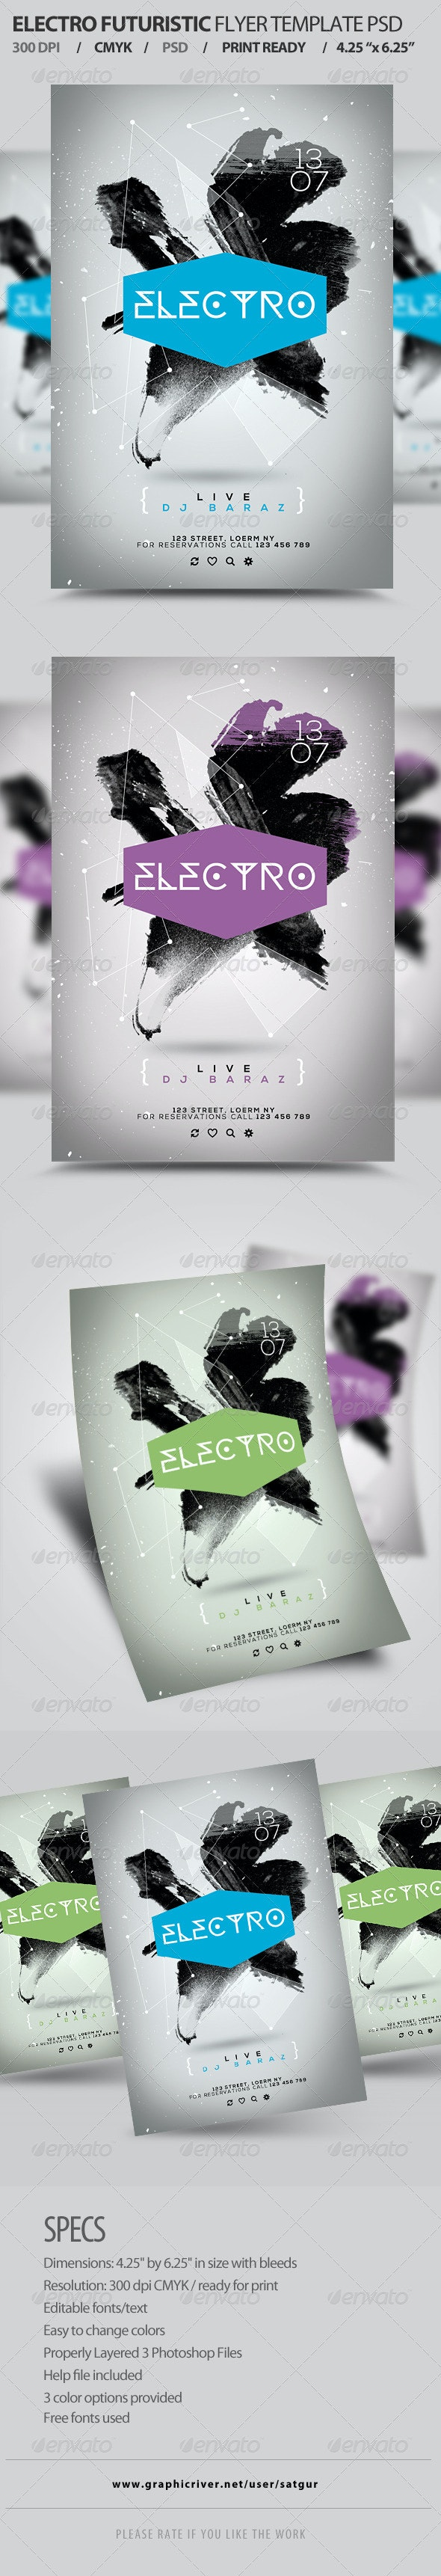 Electro Futuristic Flyer Template PSD - Clubs & Parties Events